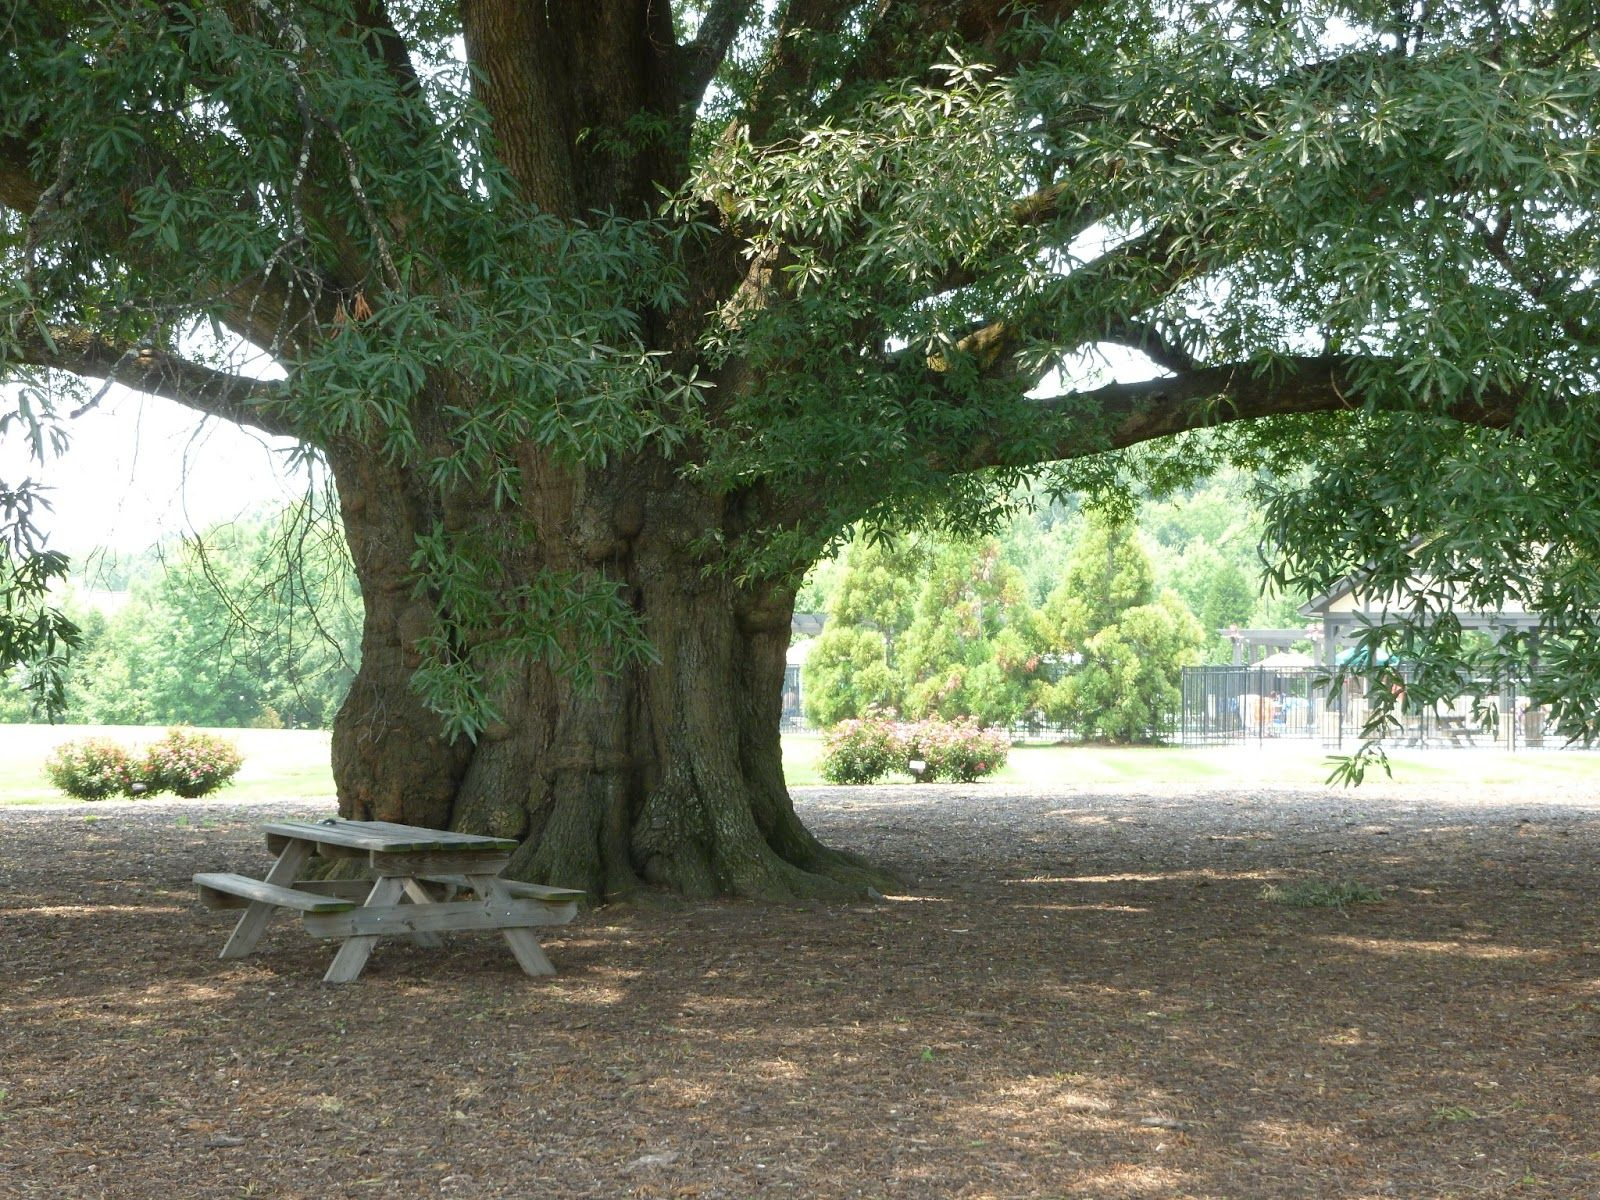 The largest tree, a Willow Oak in North Carolina is